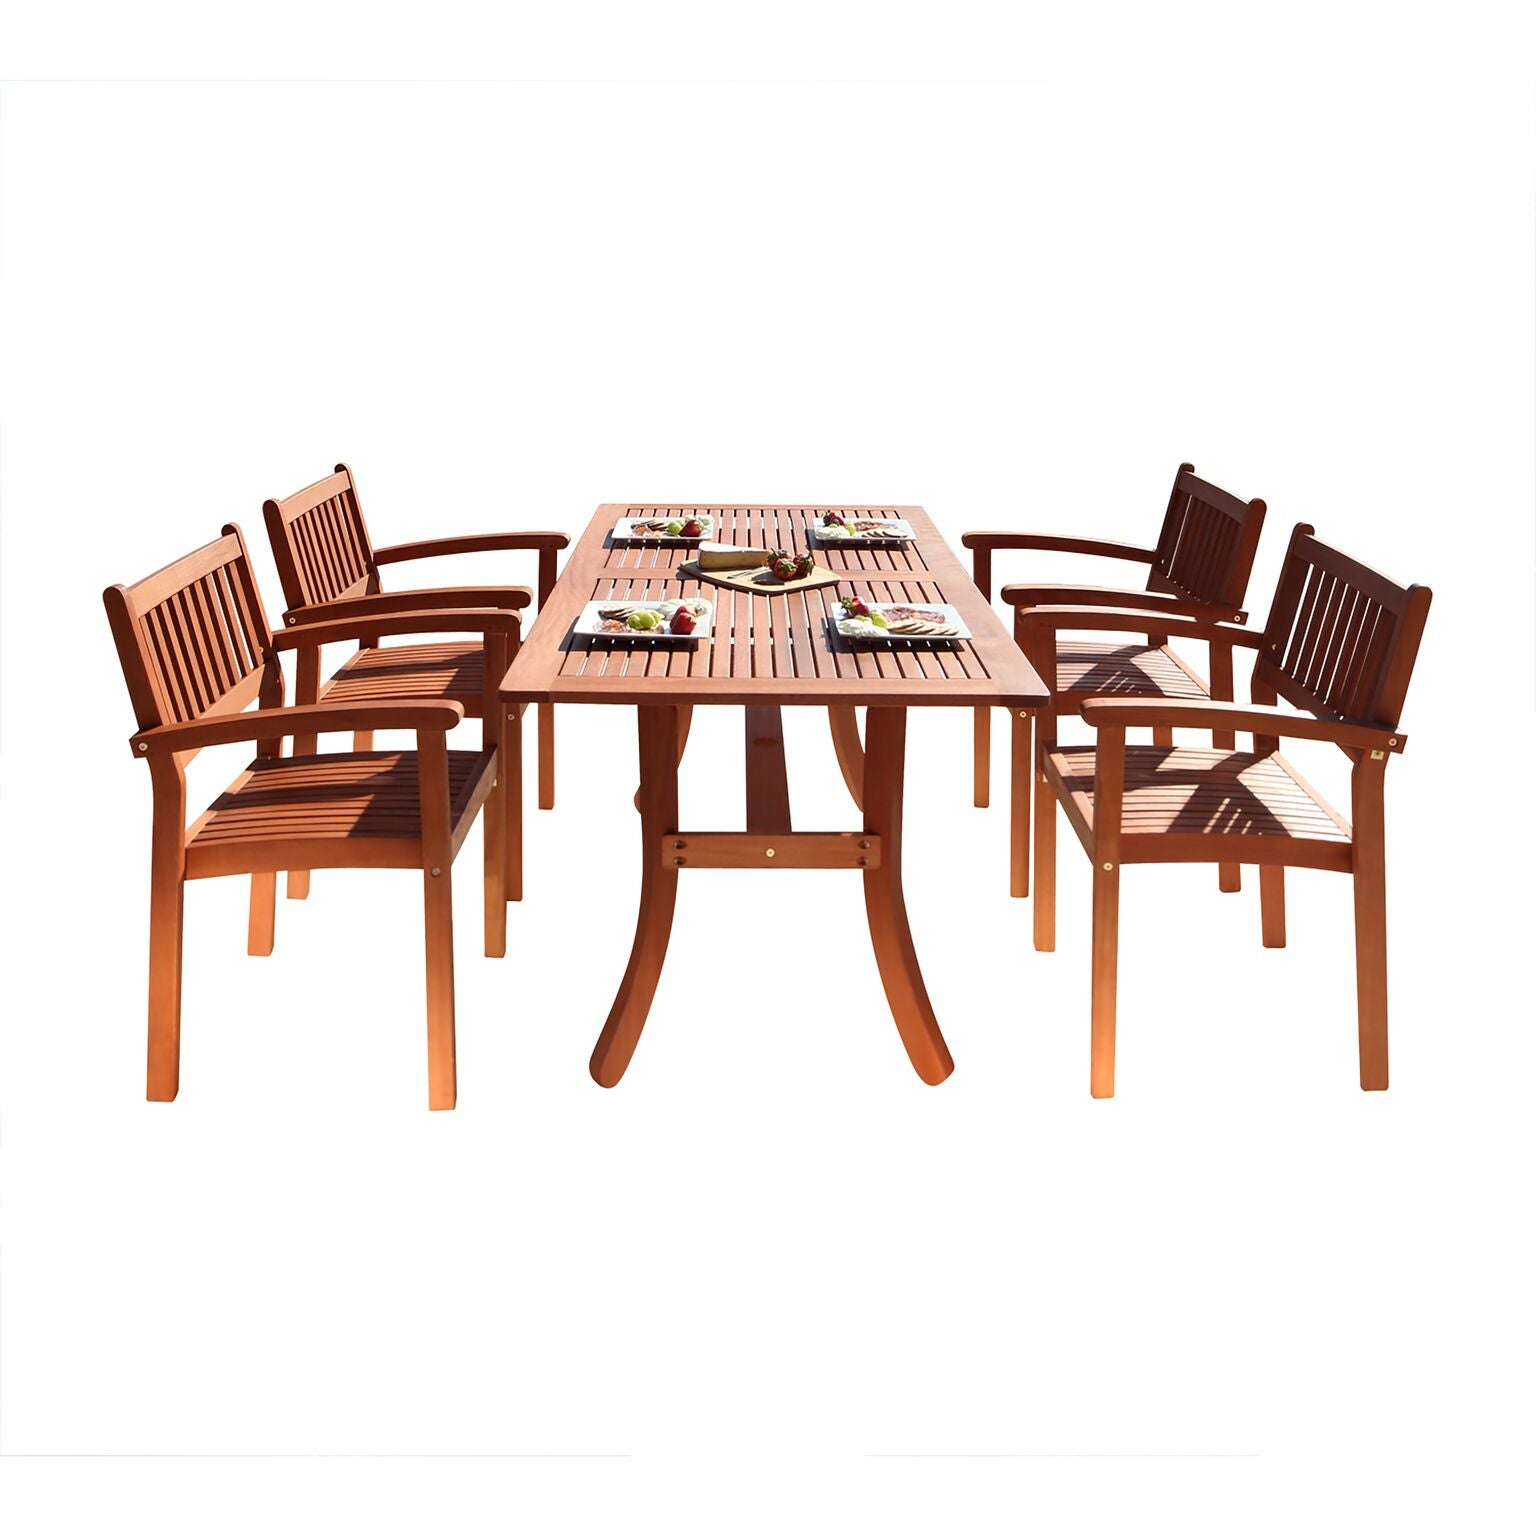 Outdoor Patio 5-Piece Wood Dining Set With Stacking Chairs